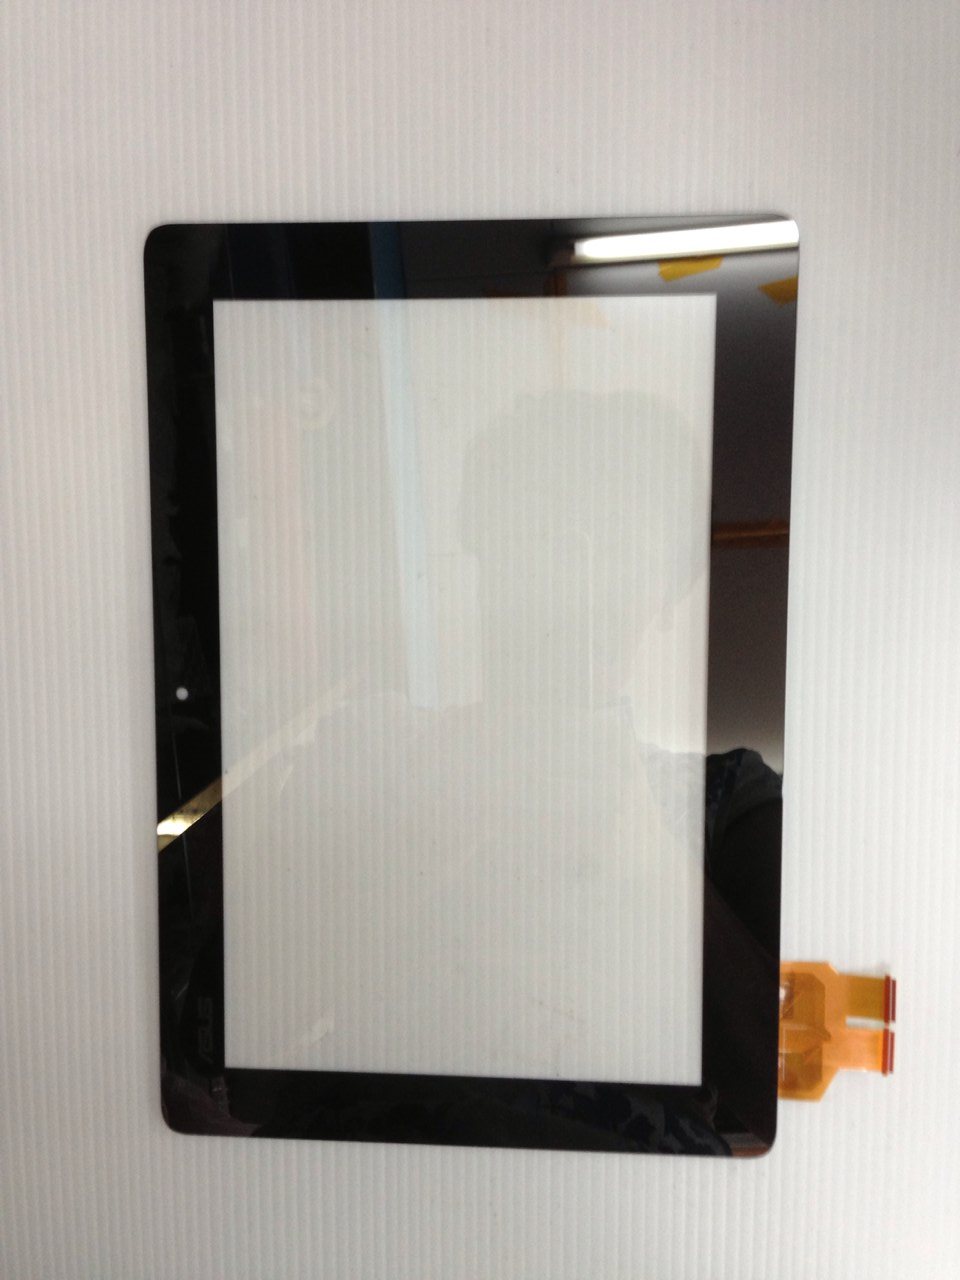 41.1aup304.205 OR 41.1aup304.203  For ASUS PadFone 2 A68 Tablet New Digitizer Touch Screen Glass Panel Lens Repair Replacement